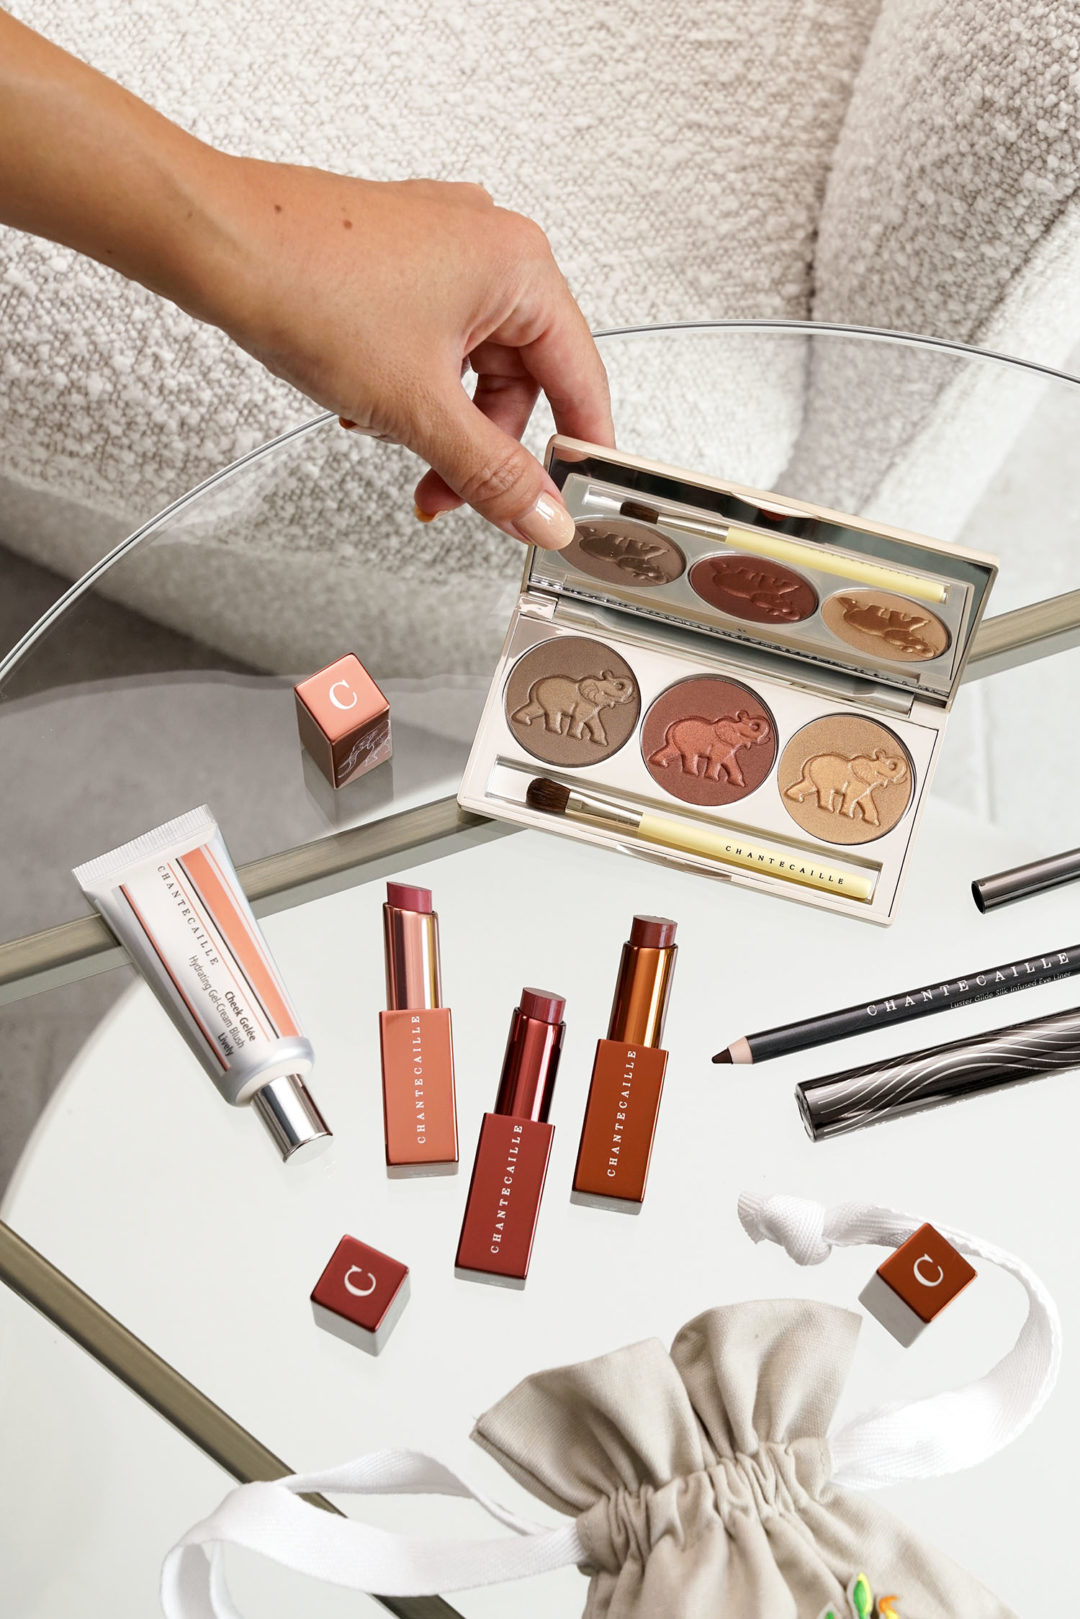 1 10 - Chantecaille Safari Fall 2020 Collection